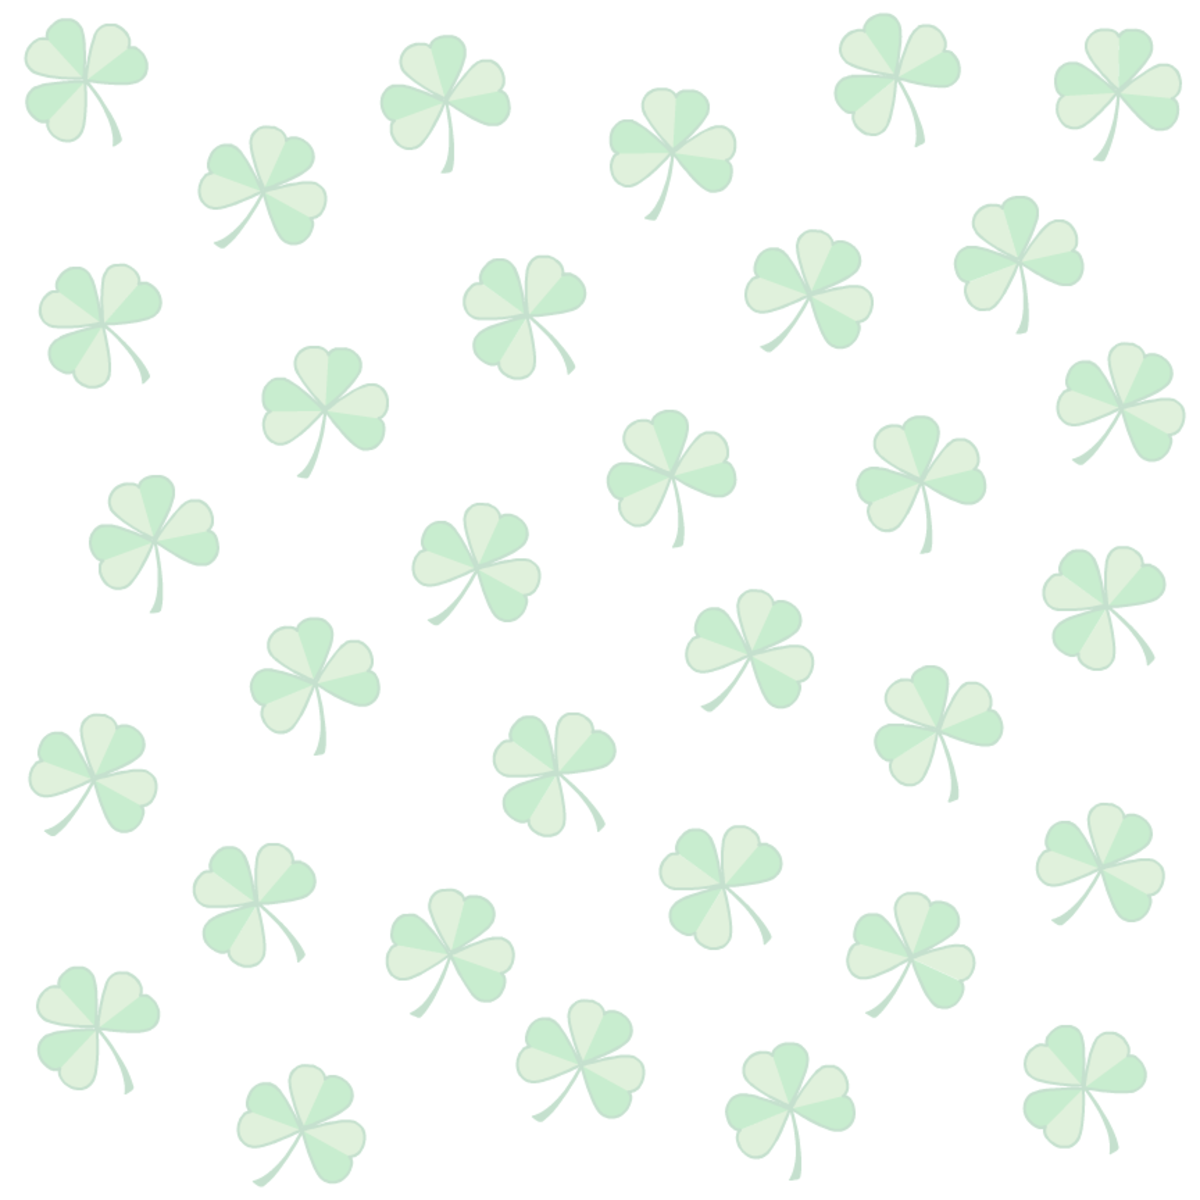 St. Patrick's Day white background scrapbook paper